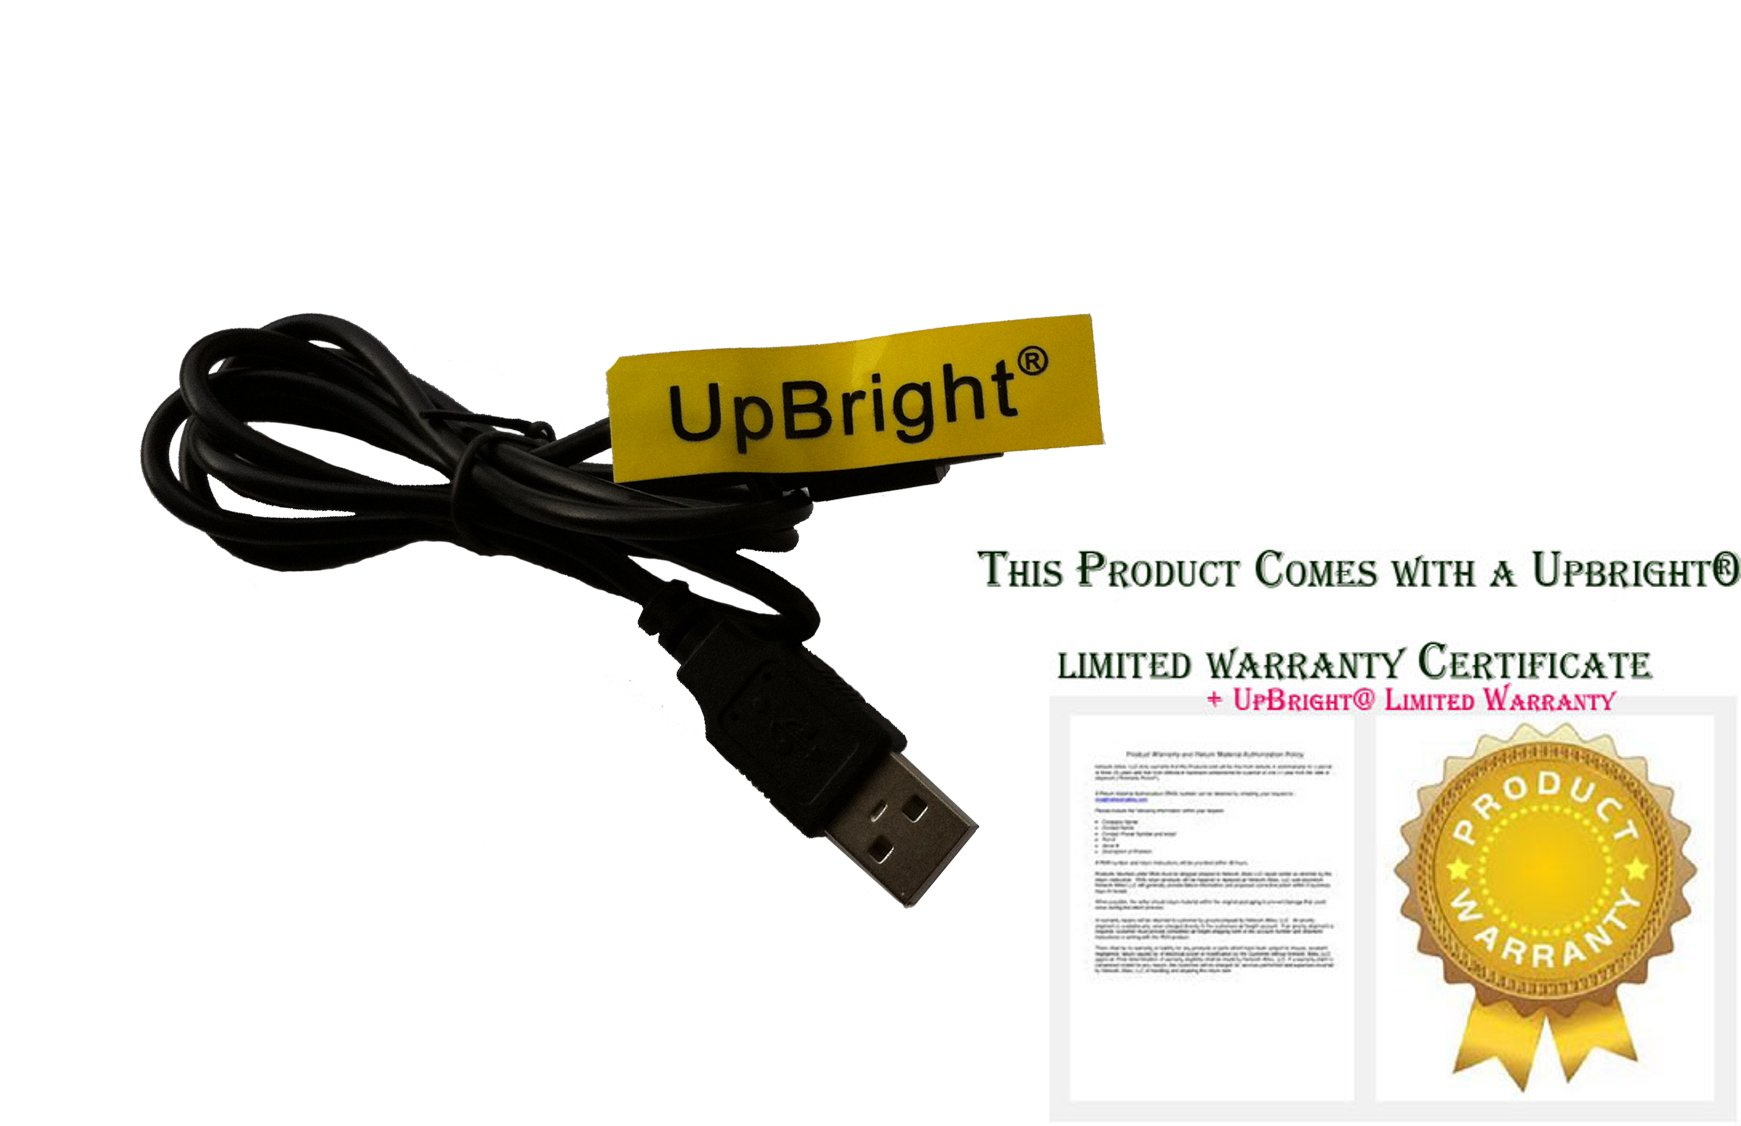 UpBright NEW USB Charging Cable PC Laptop DC Charger Power Cord For VTech 80-171650 80171650 Kidizoom Smartwatch DX, Vivid Violet (2nd Generation) by UPBRIGHT (Image #2)